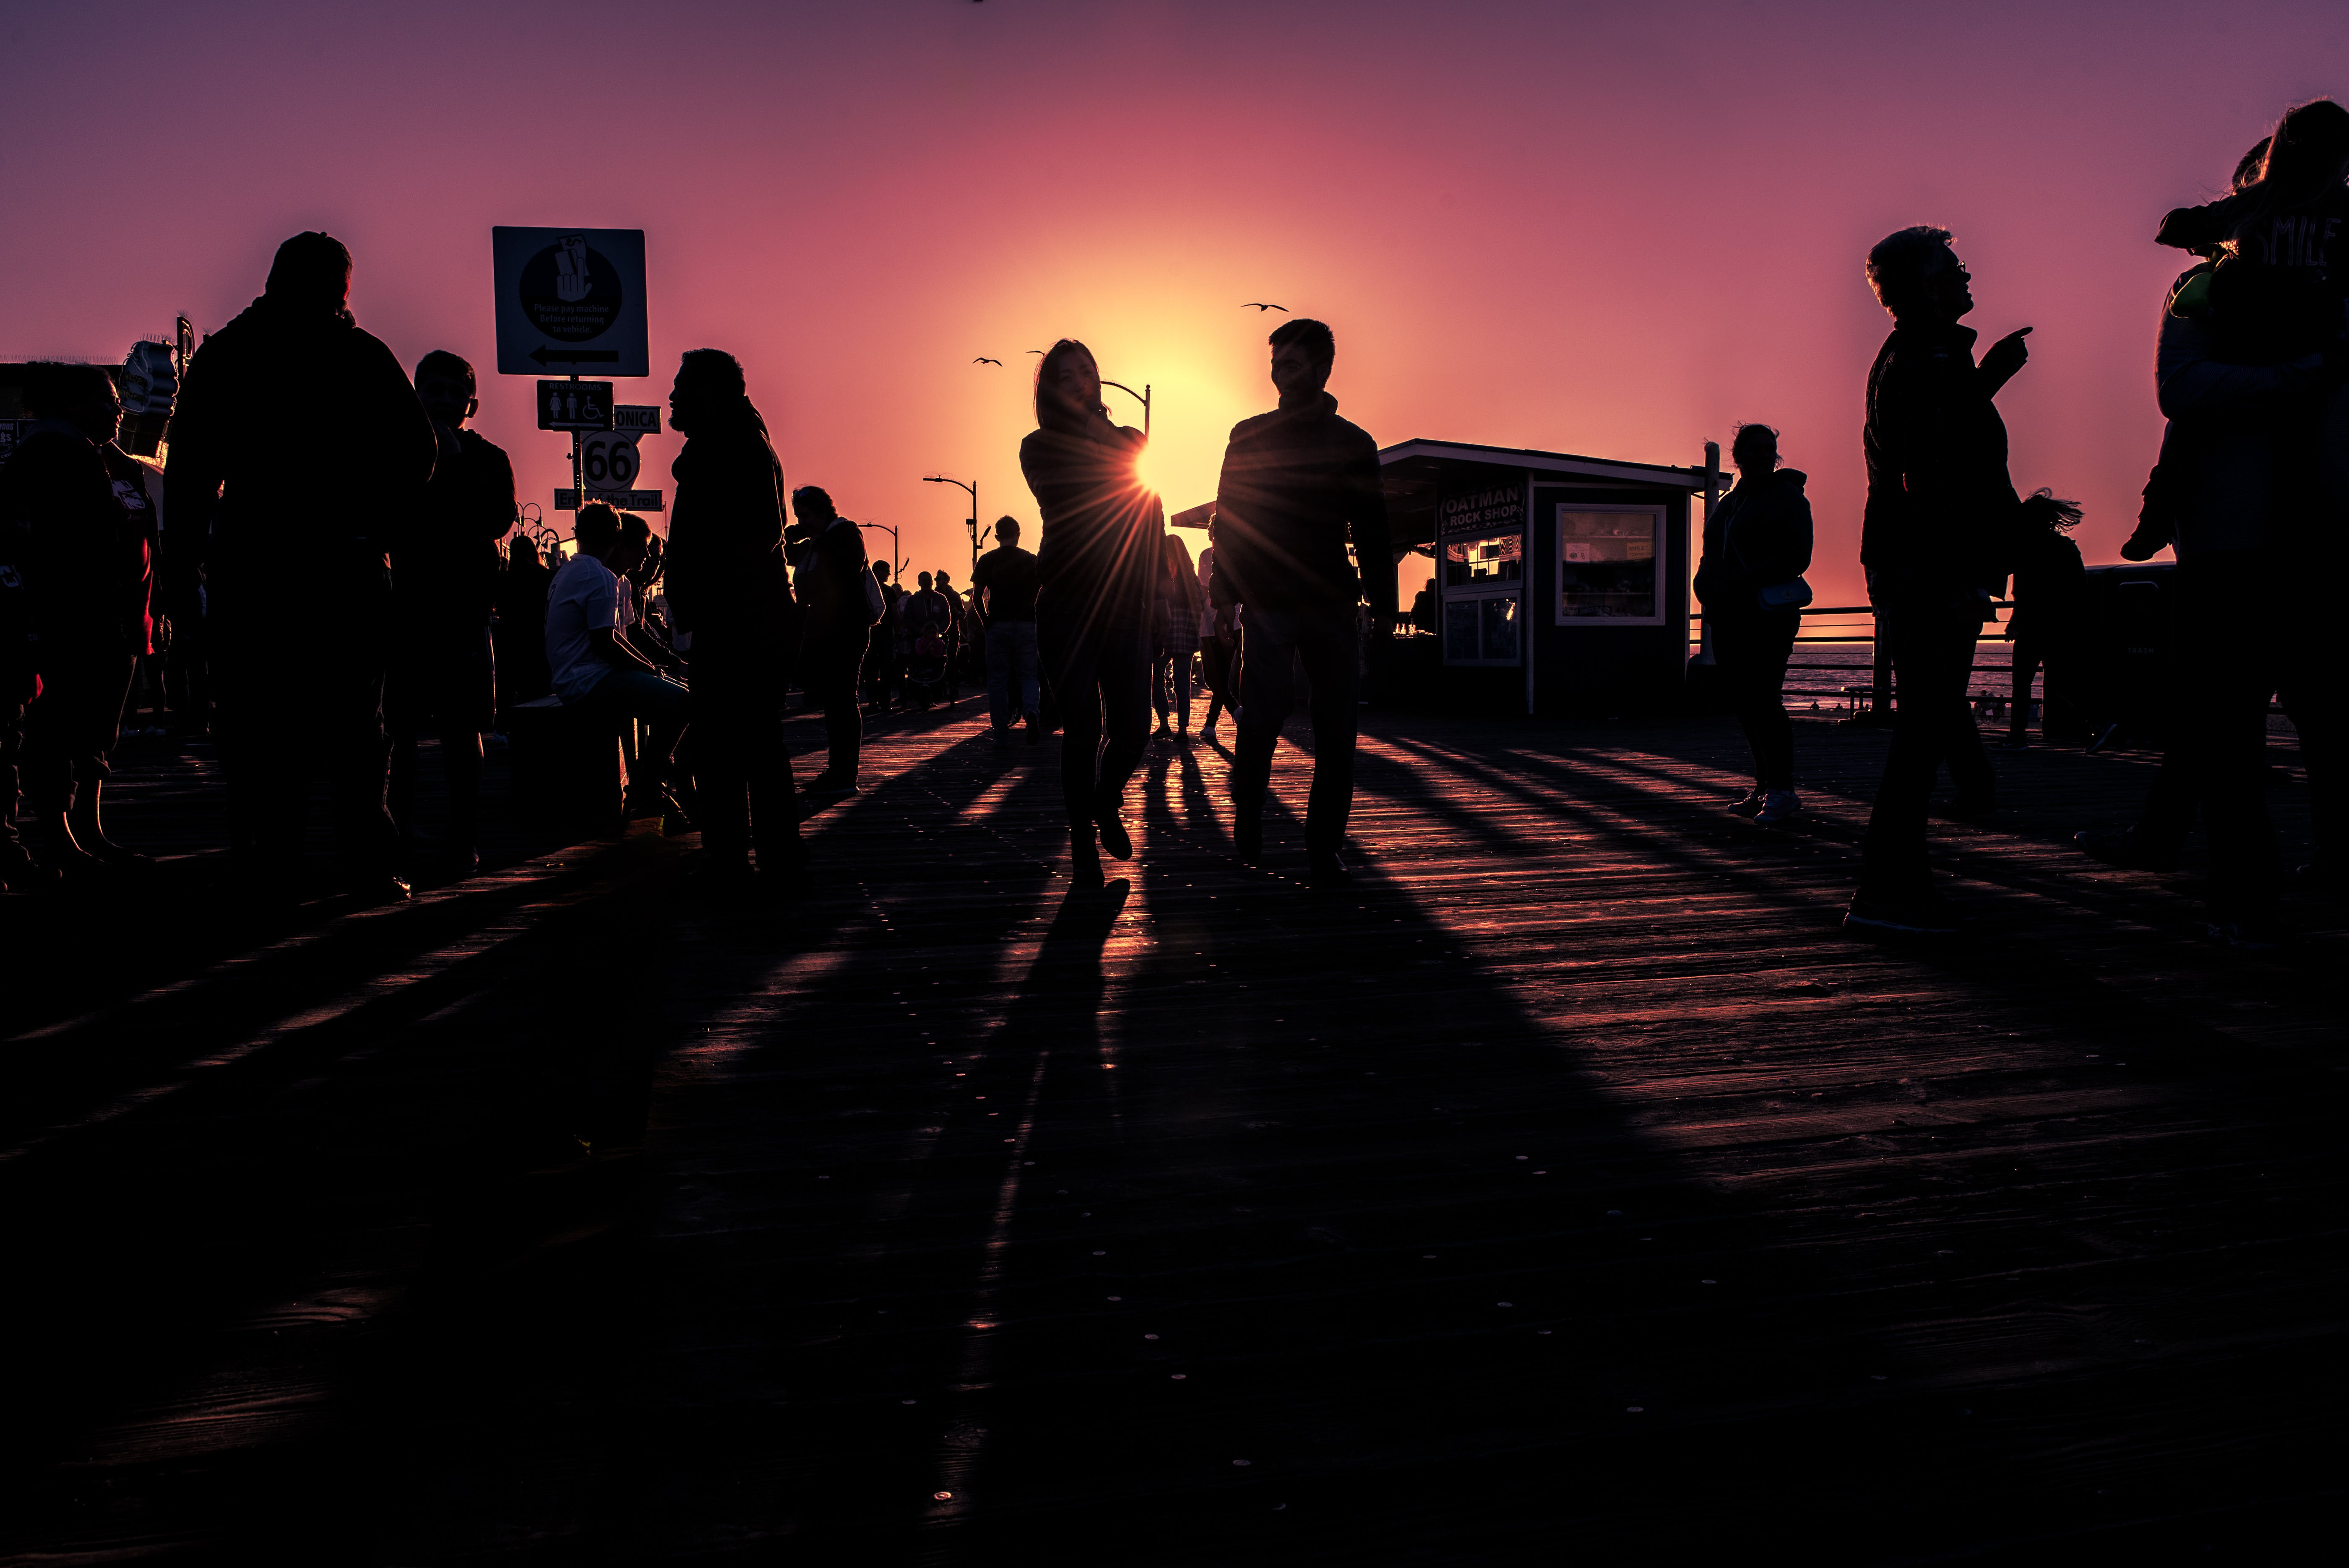 Silhouette Photography of People Standing on Dock